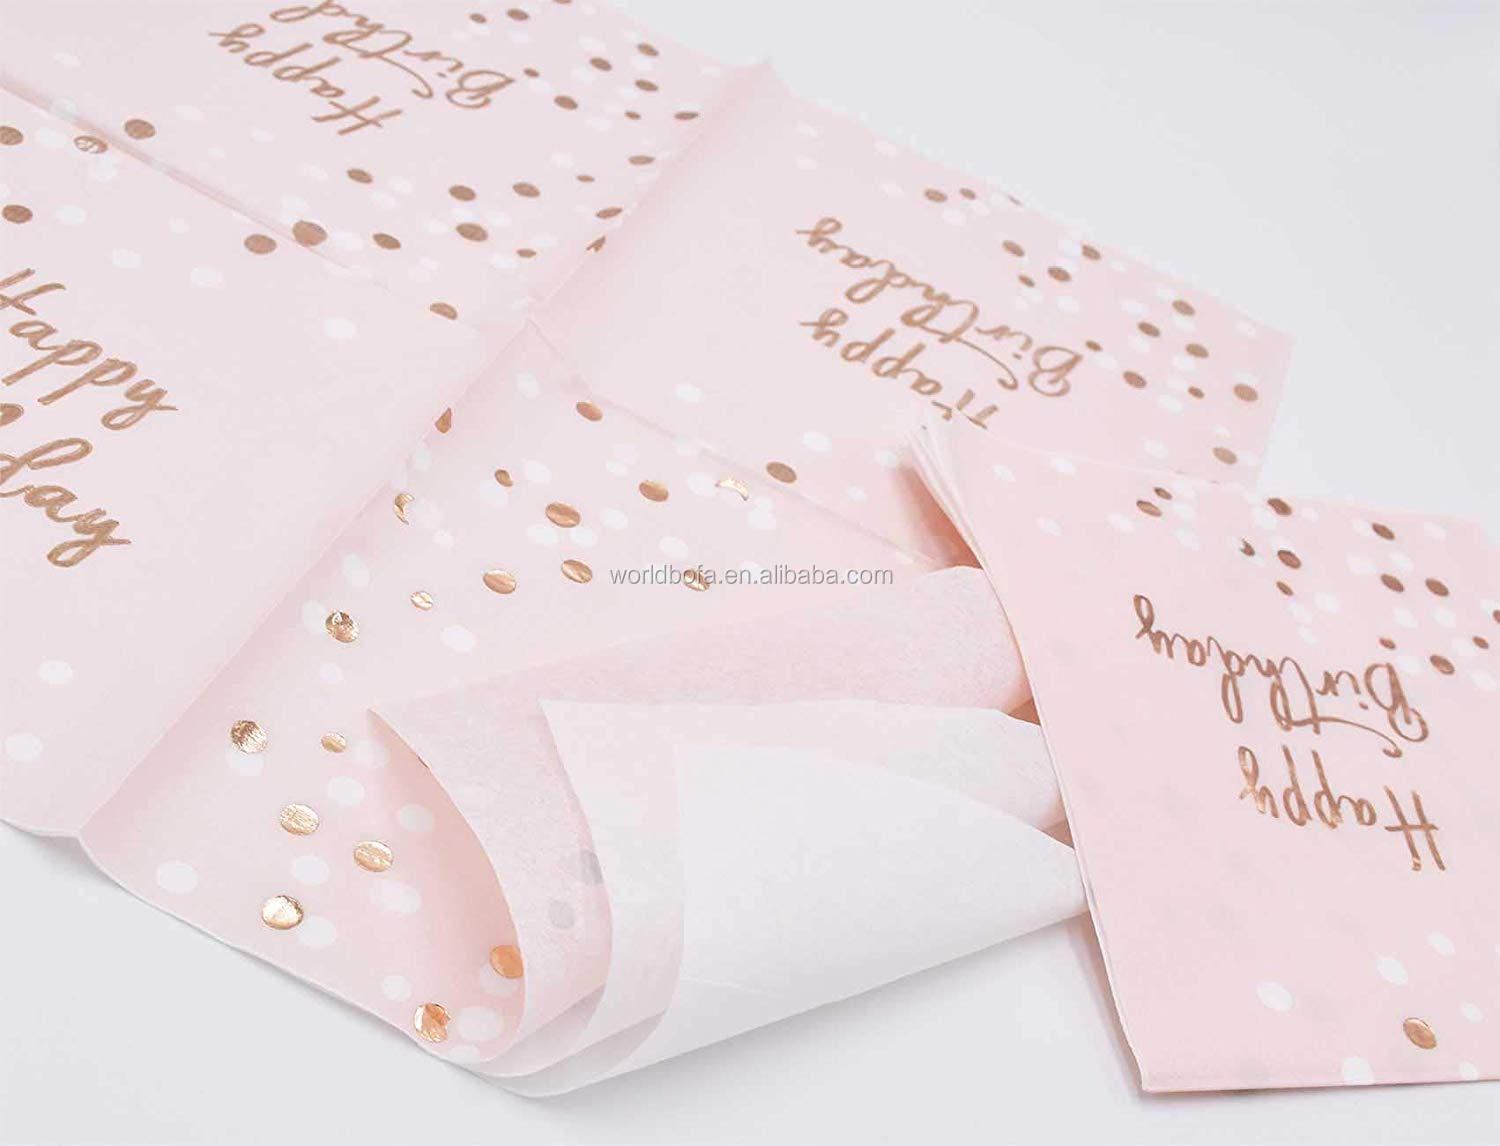 Rose Gold Foil Cocktail Napkins Disposable for Birthday